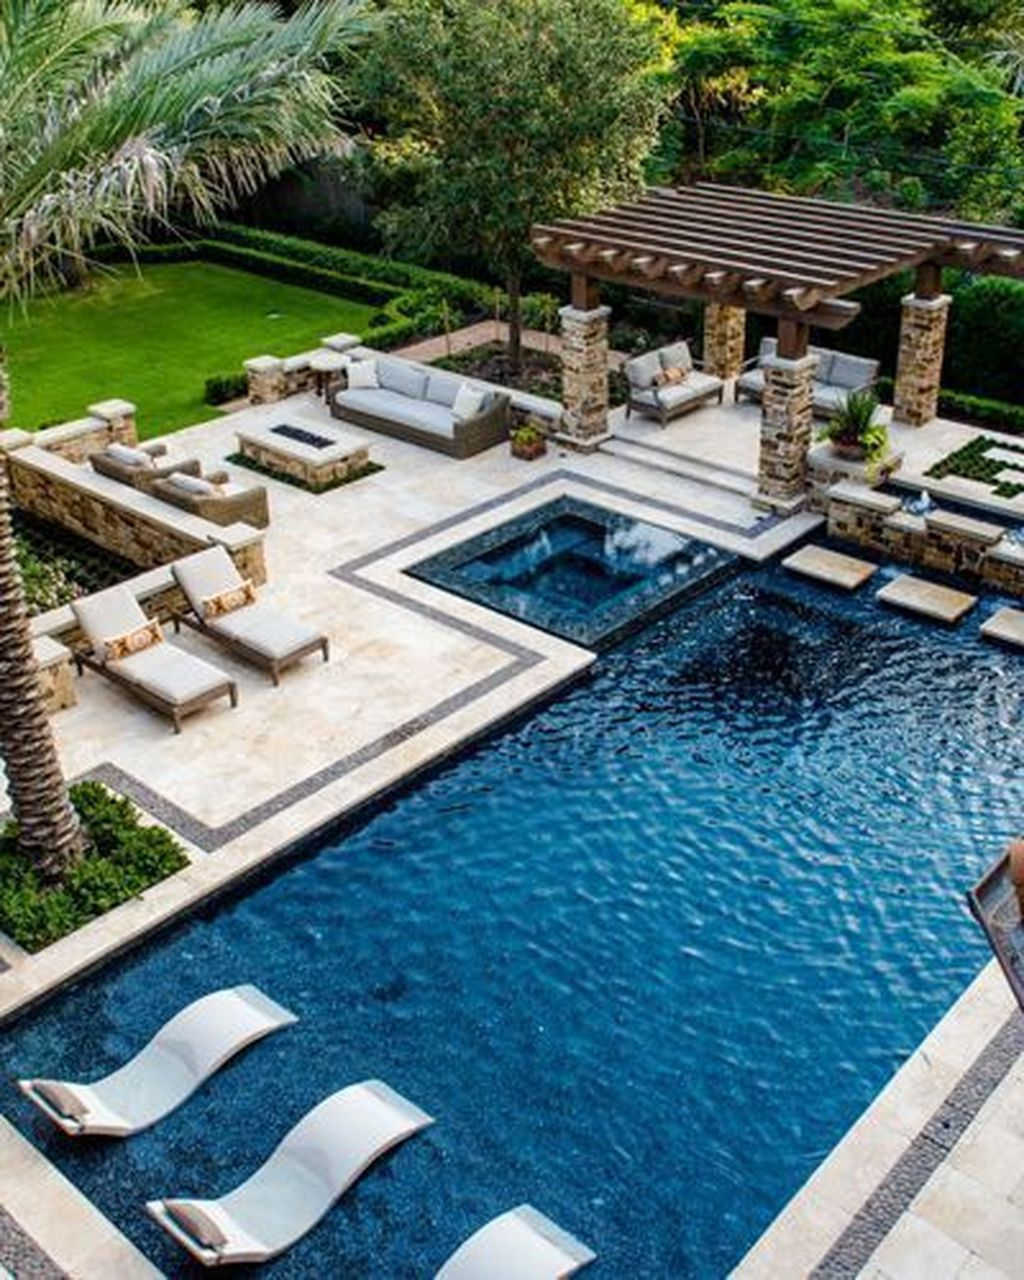 36 Vintage Backyard Home Design Ideas With Swimming Pool To Have Indoor Pool Design Swimming Pool Landscaping Dream Pools